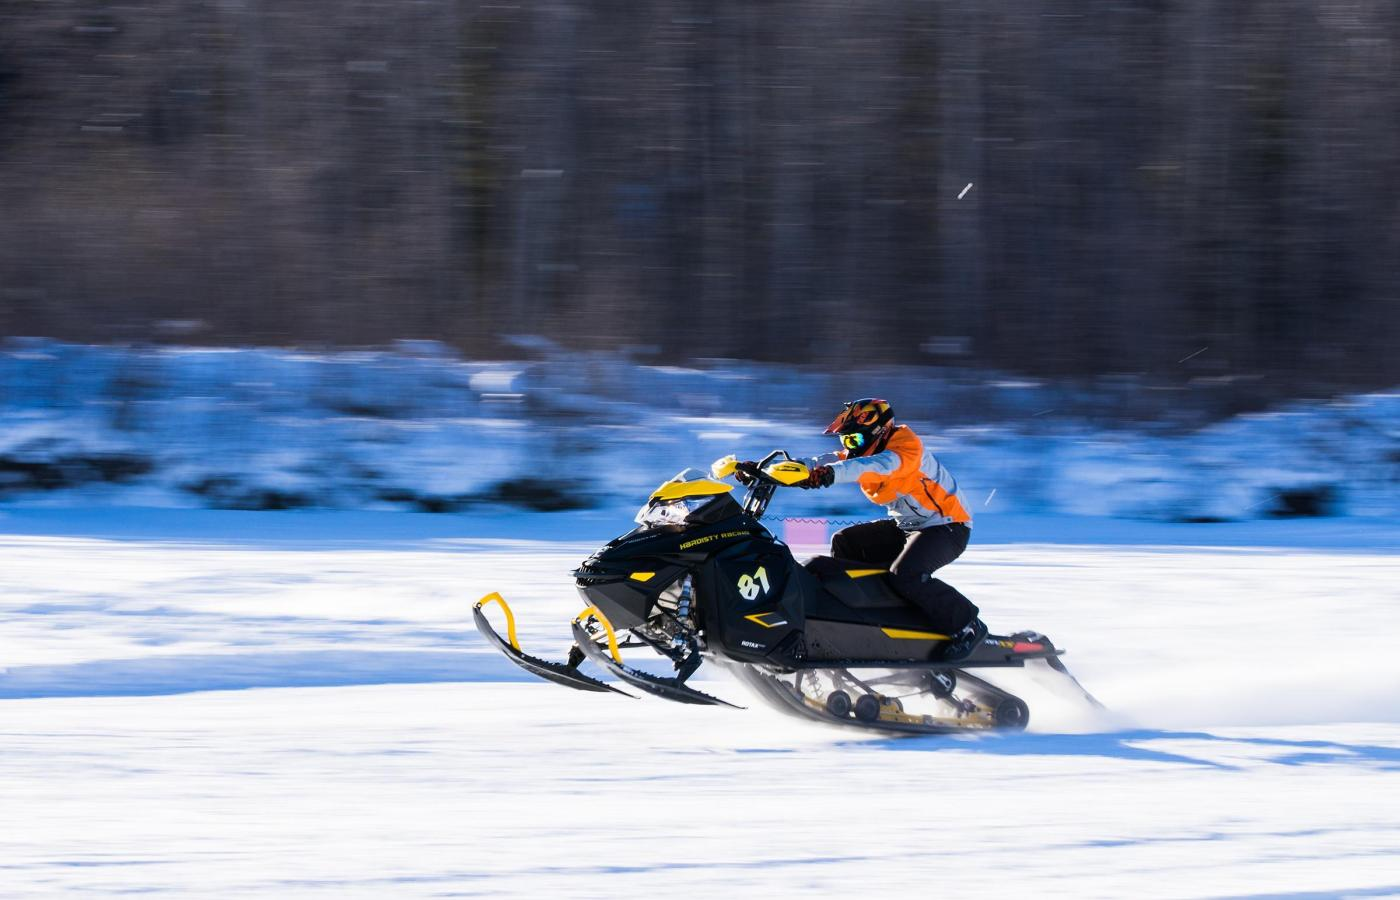 snowmobiling going fast